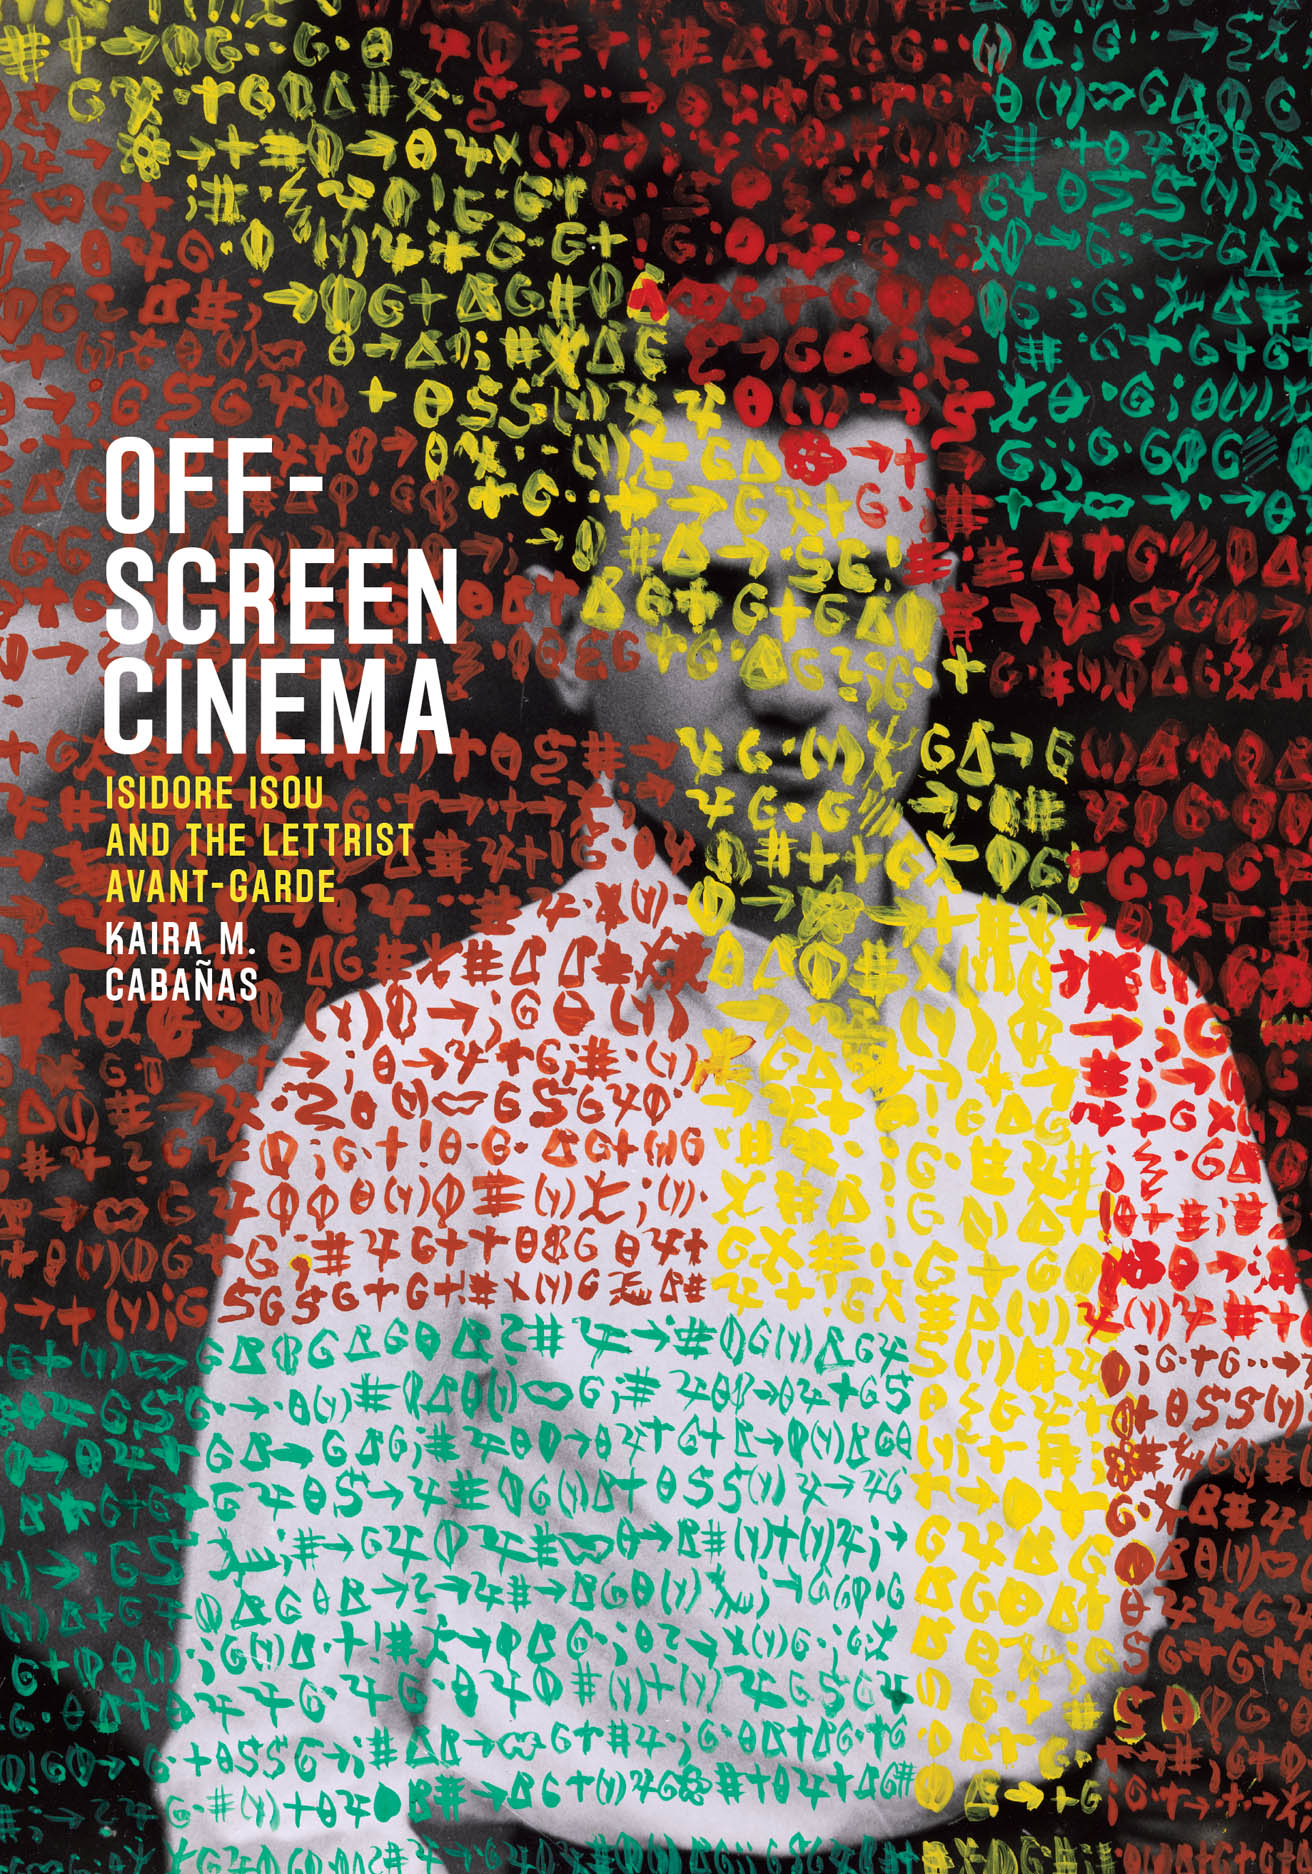 Off-Screen Cinema